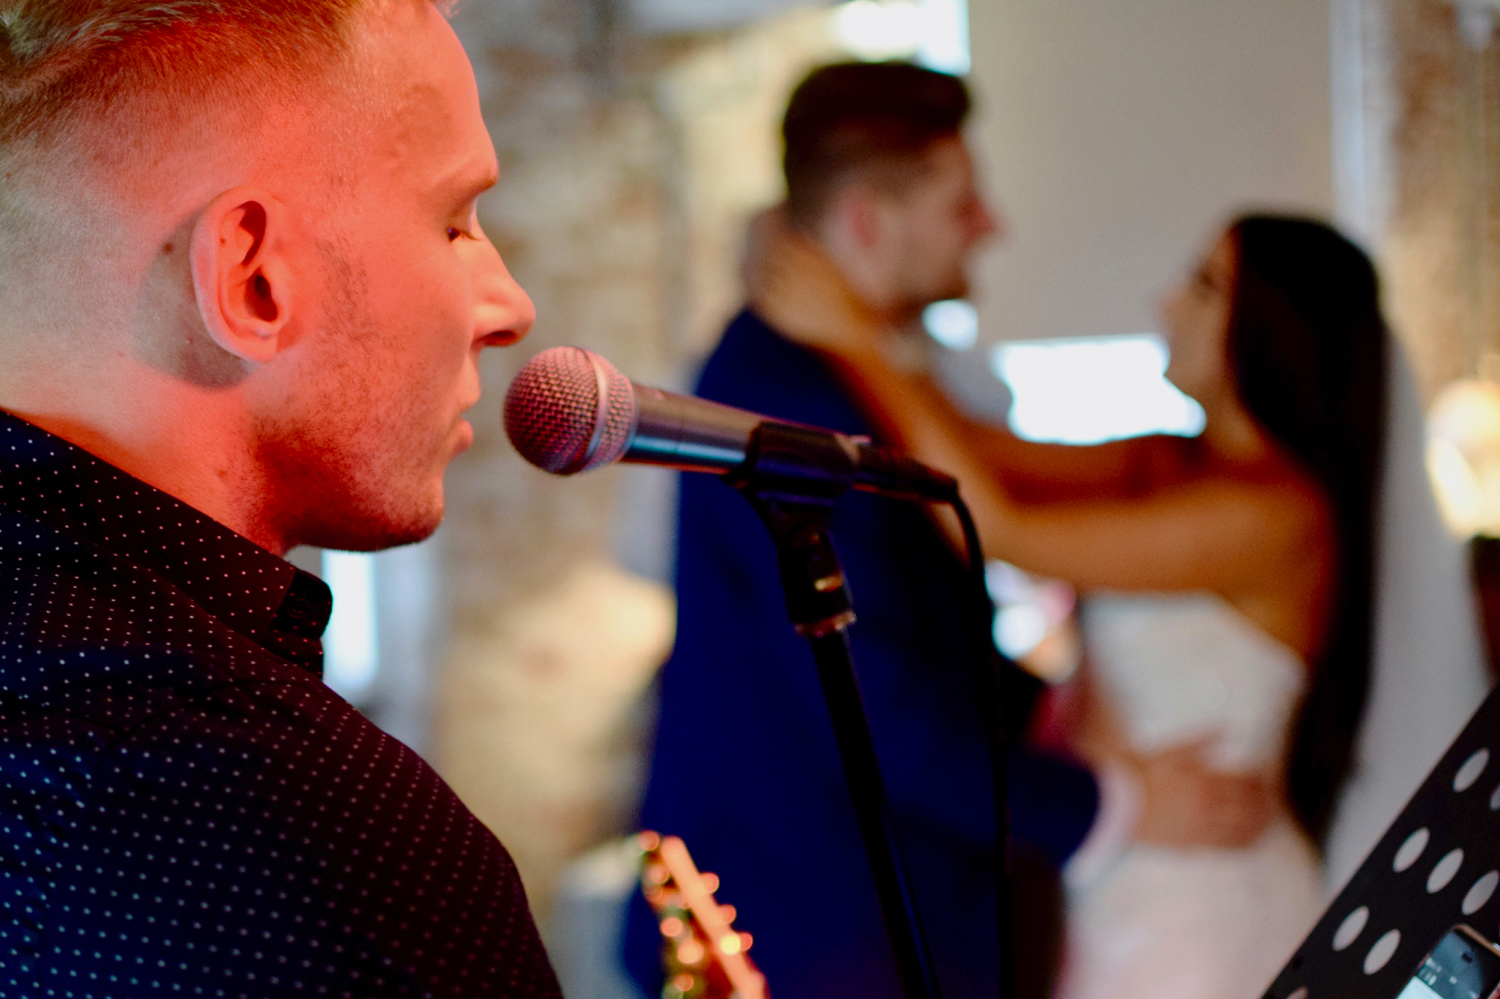 Nottingham Wedding Band 'Dammit Jack' May Blog